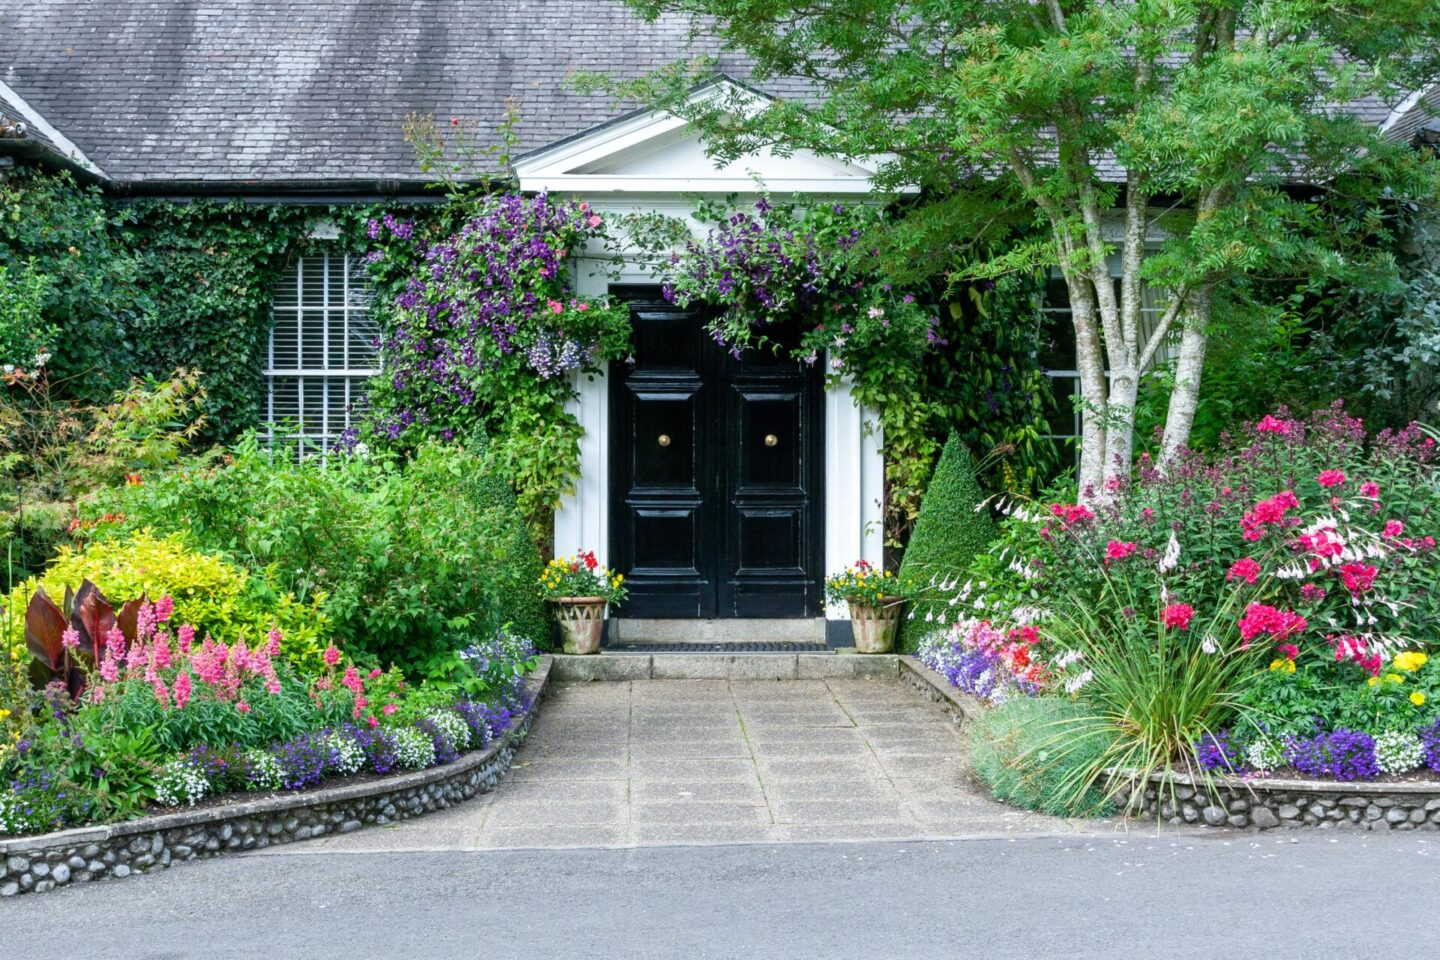 4 kerb appeal ideas to make your home stand out